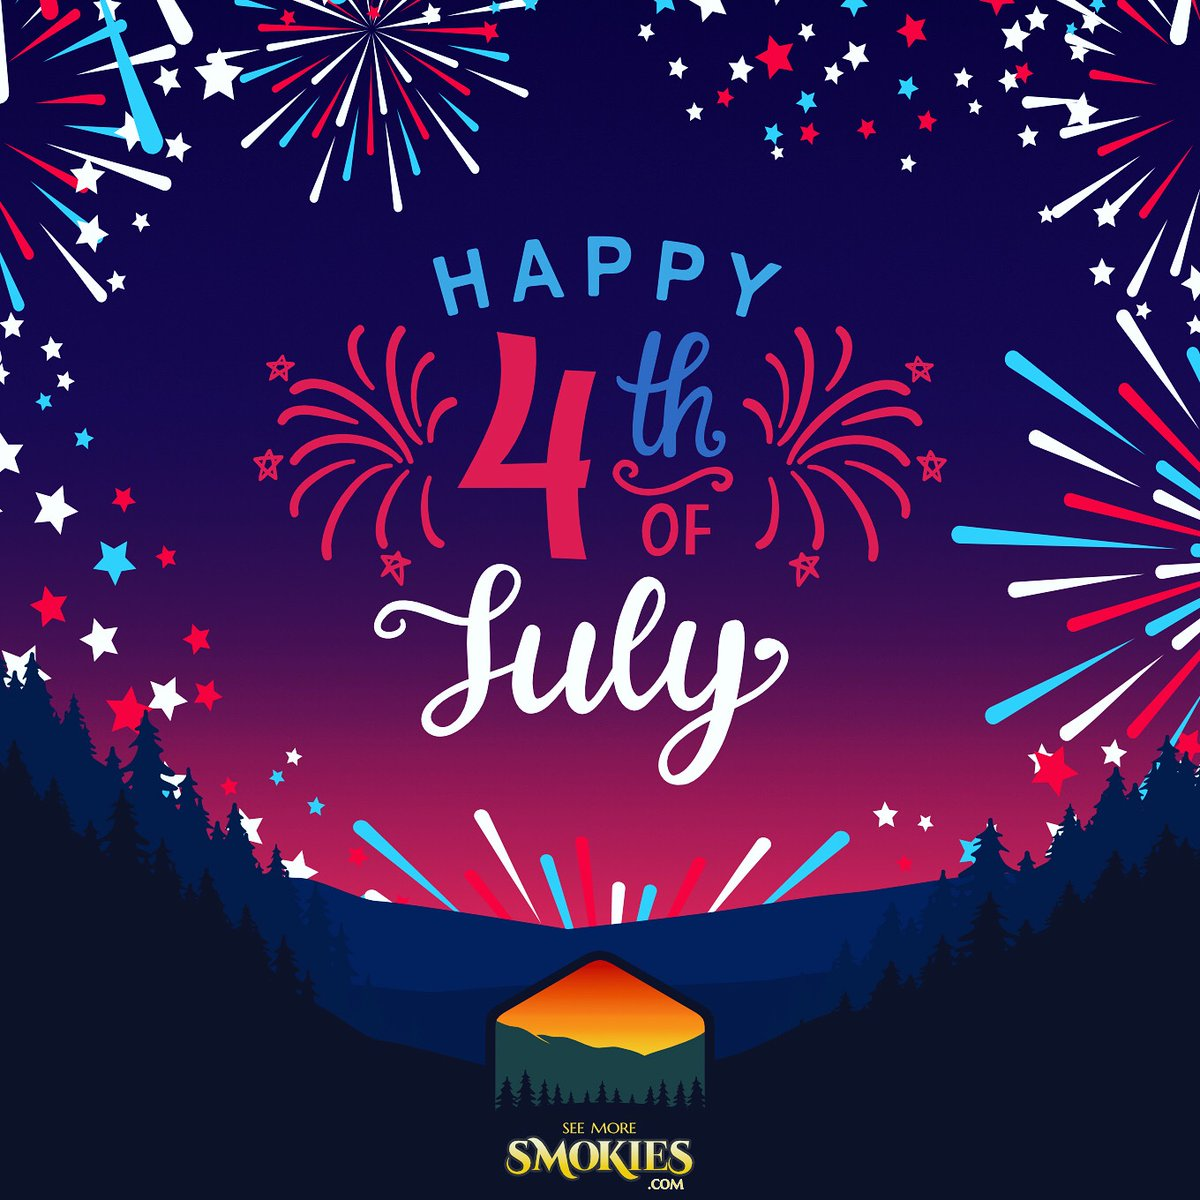 Happy Fourth of July weekend everyone! We hope you had a safe and eventful evening, tag us in some of your amazing shots of your fireworks snapshots in the comments! 🎇   #independenceday #fourthofjuly #summer2020 #besafe #fireworks https://t.co/UHC47htydE